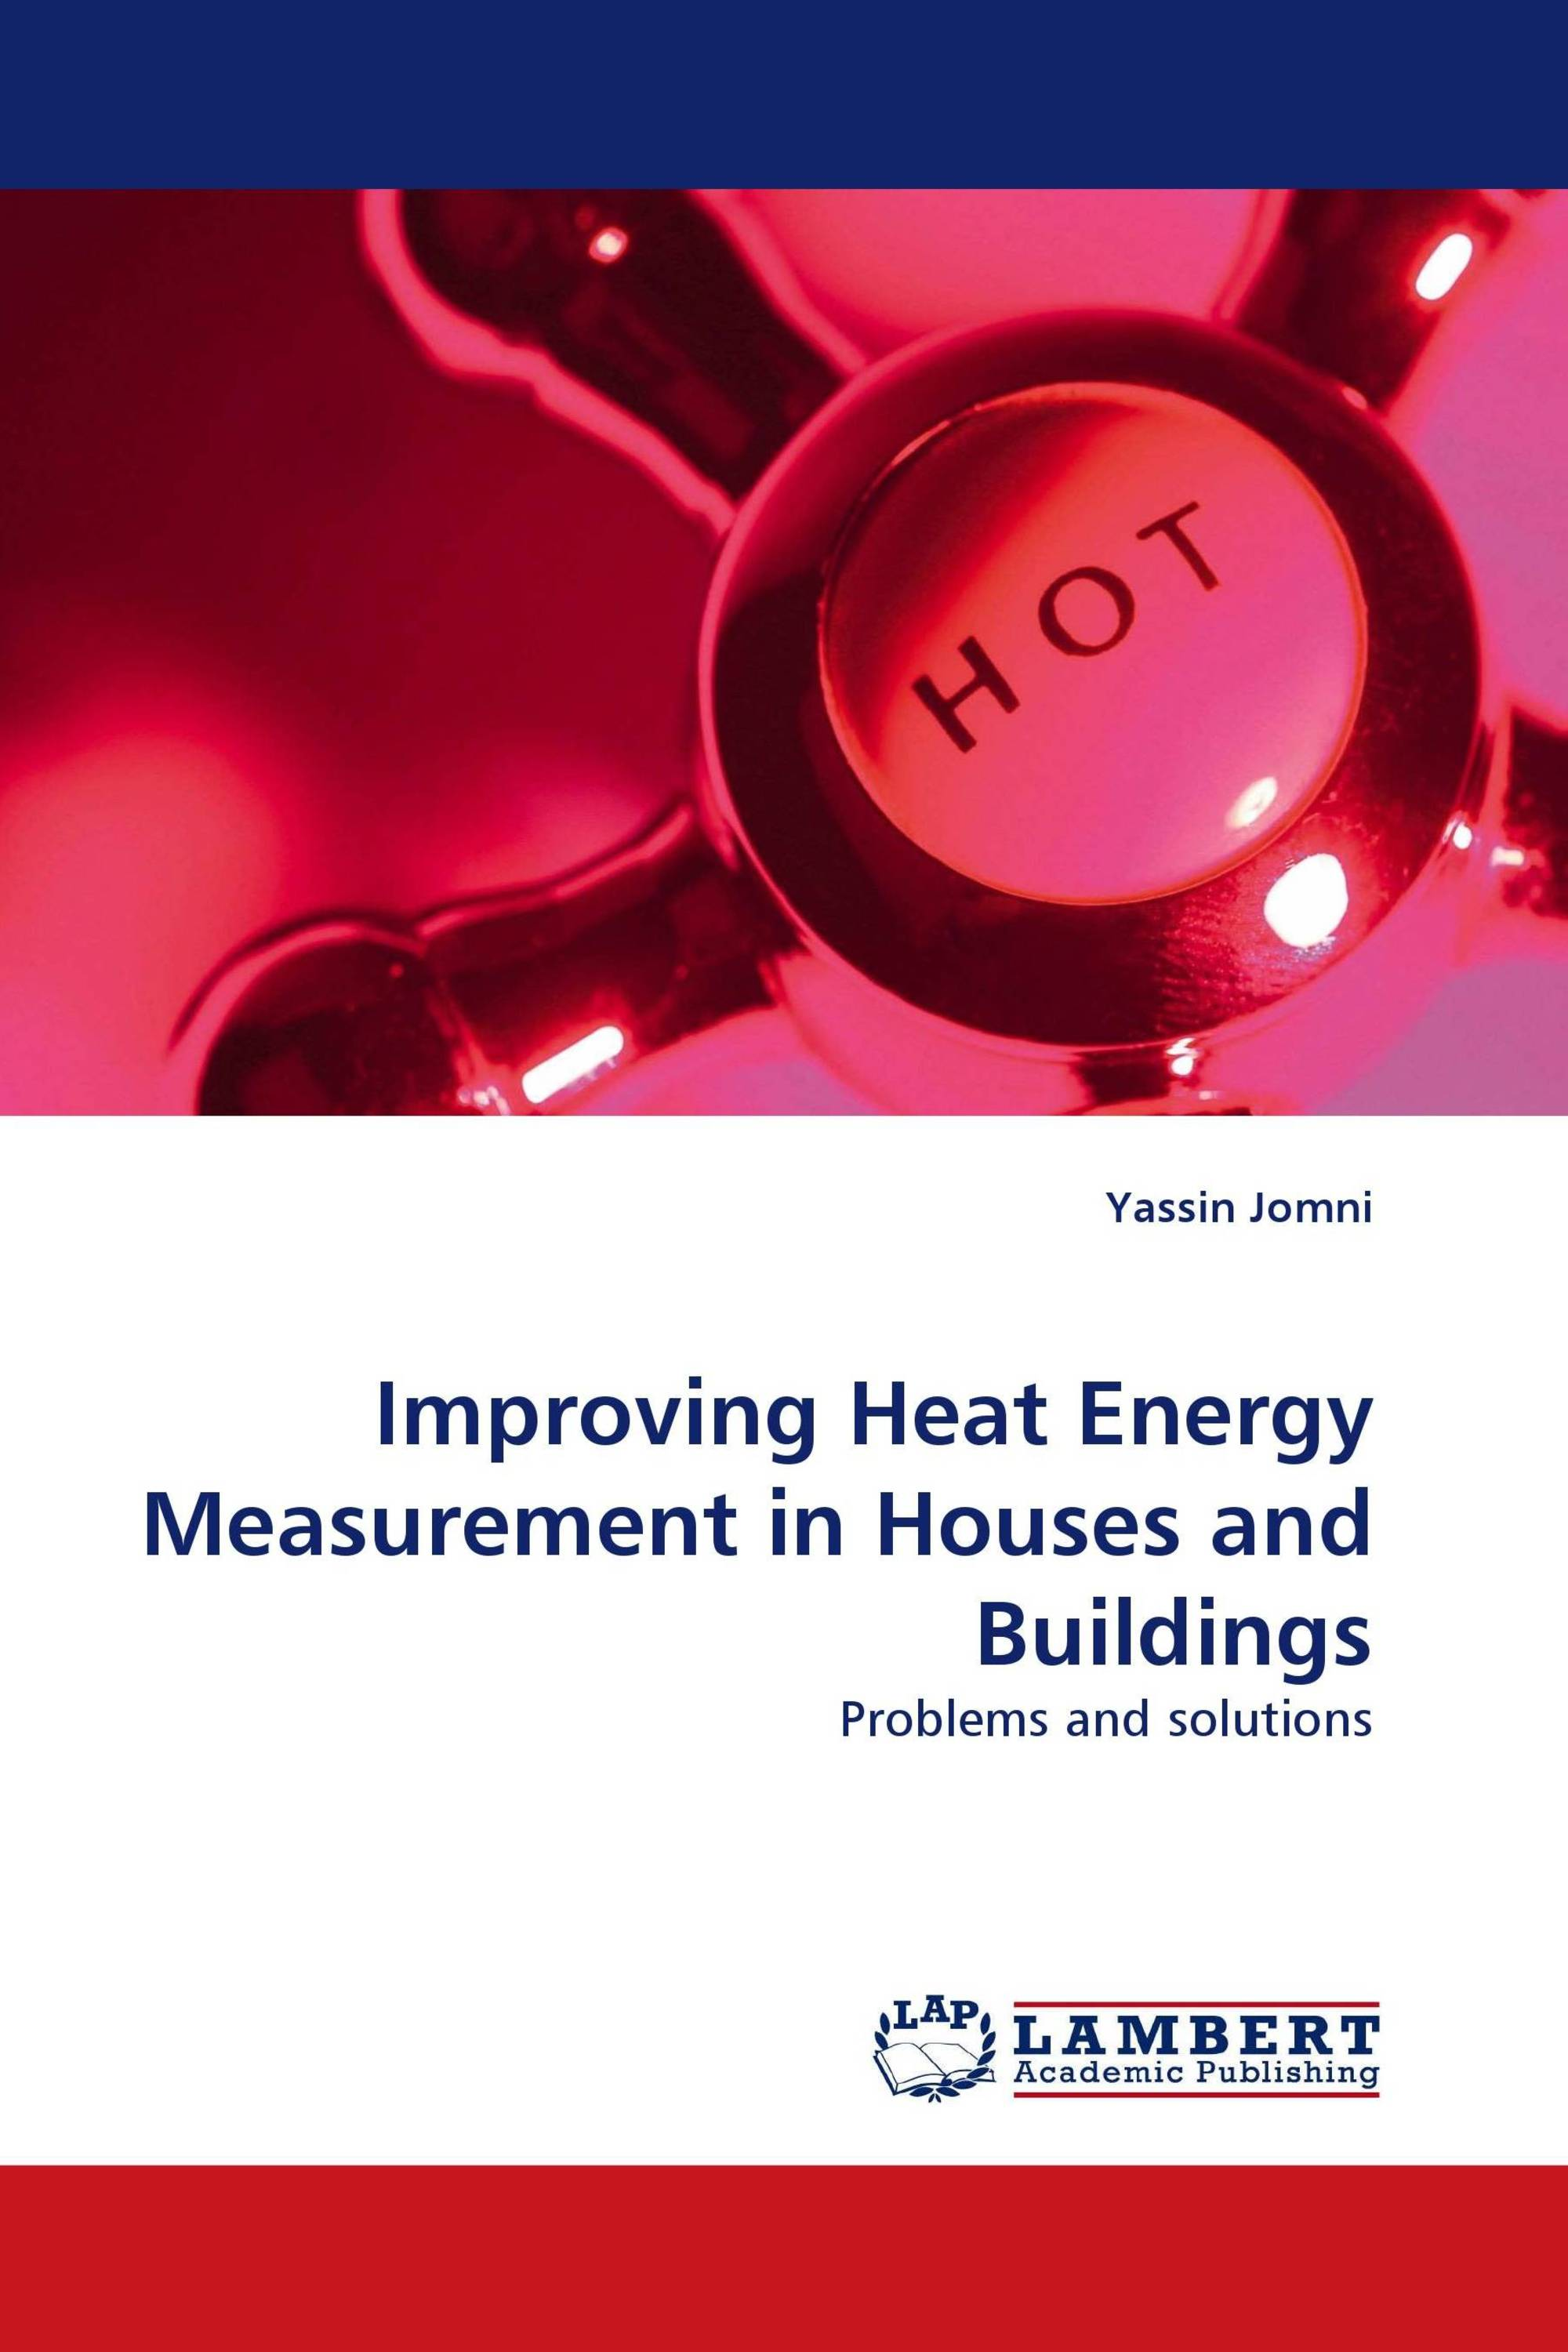 Improving Heat Energy Measurement in Houses and Buildings